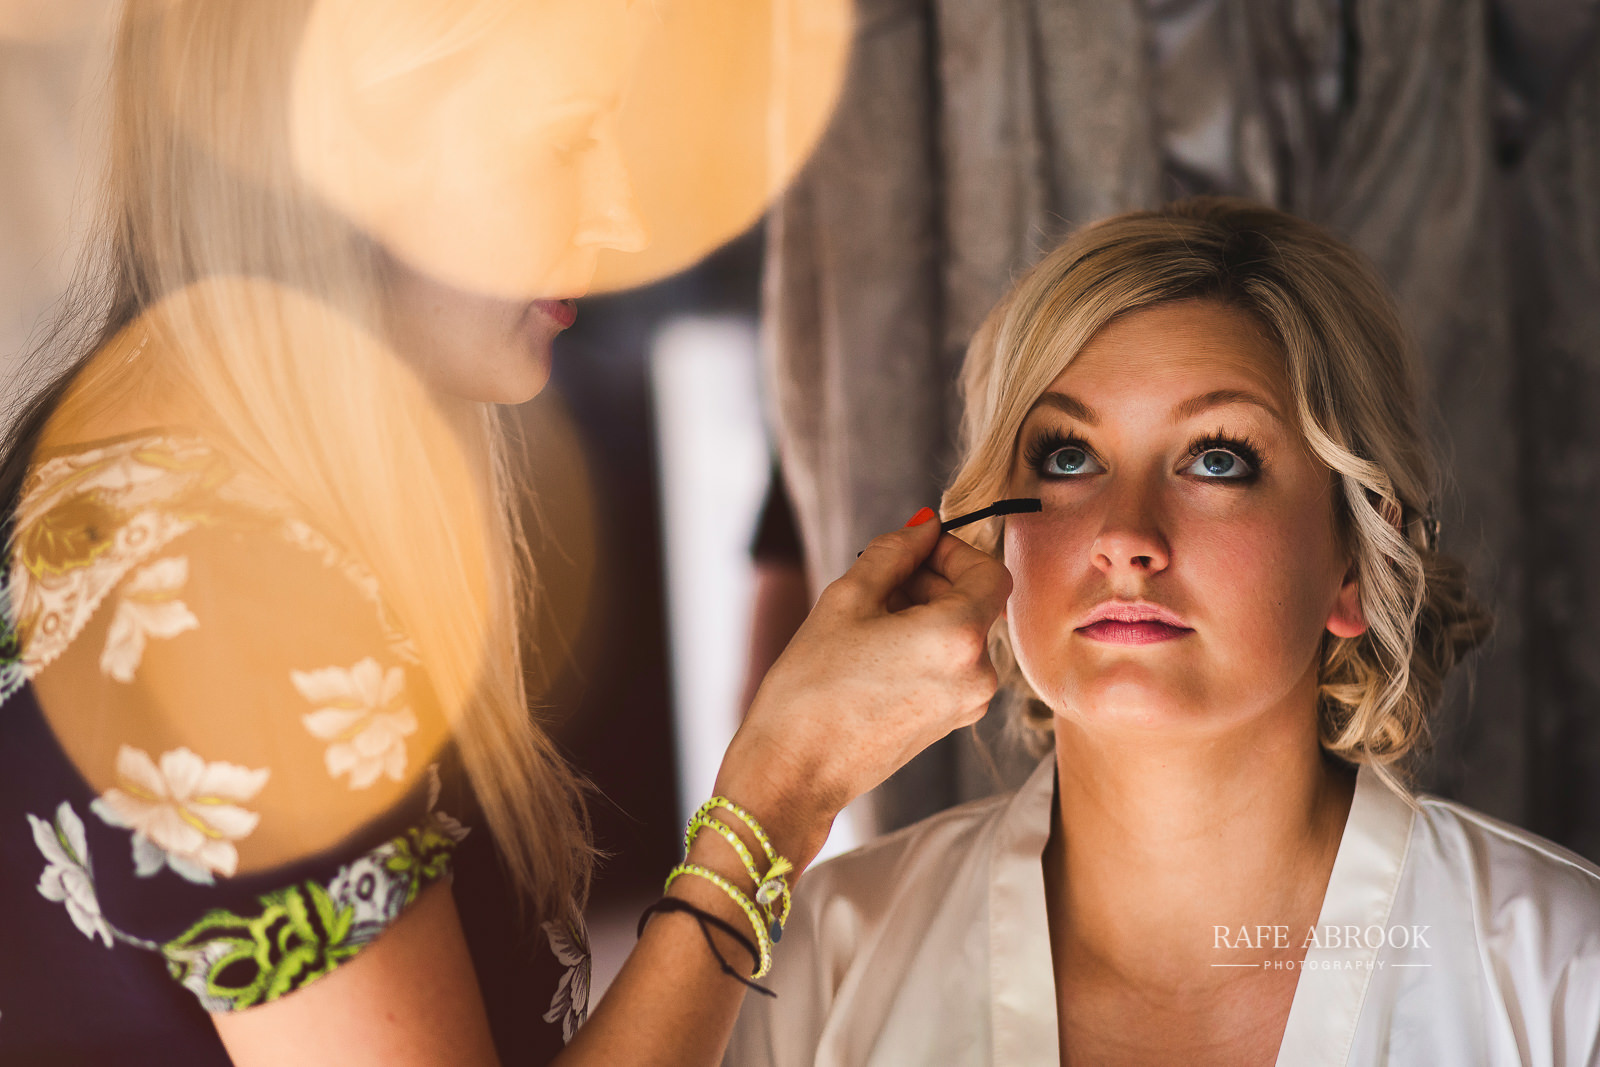 south farm wedding royston hertfordshire wedding photographer rafe abrook photography-1222.jpg